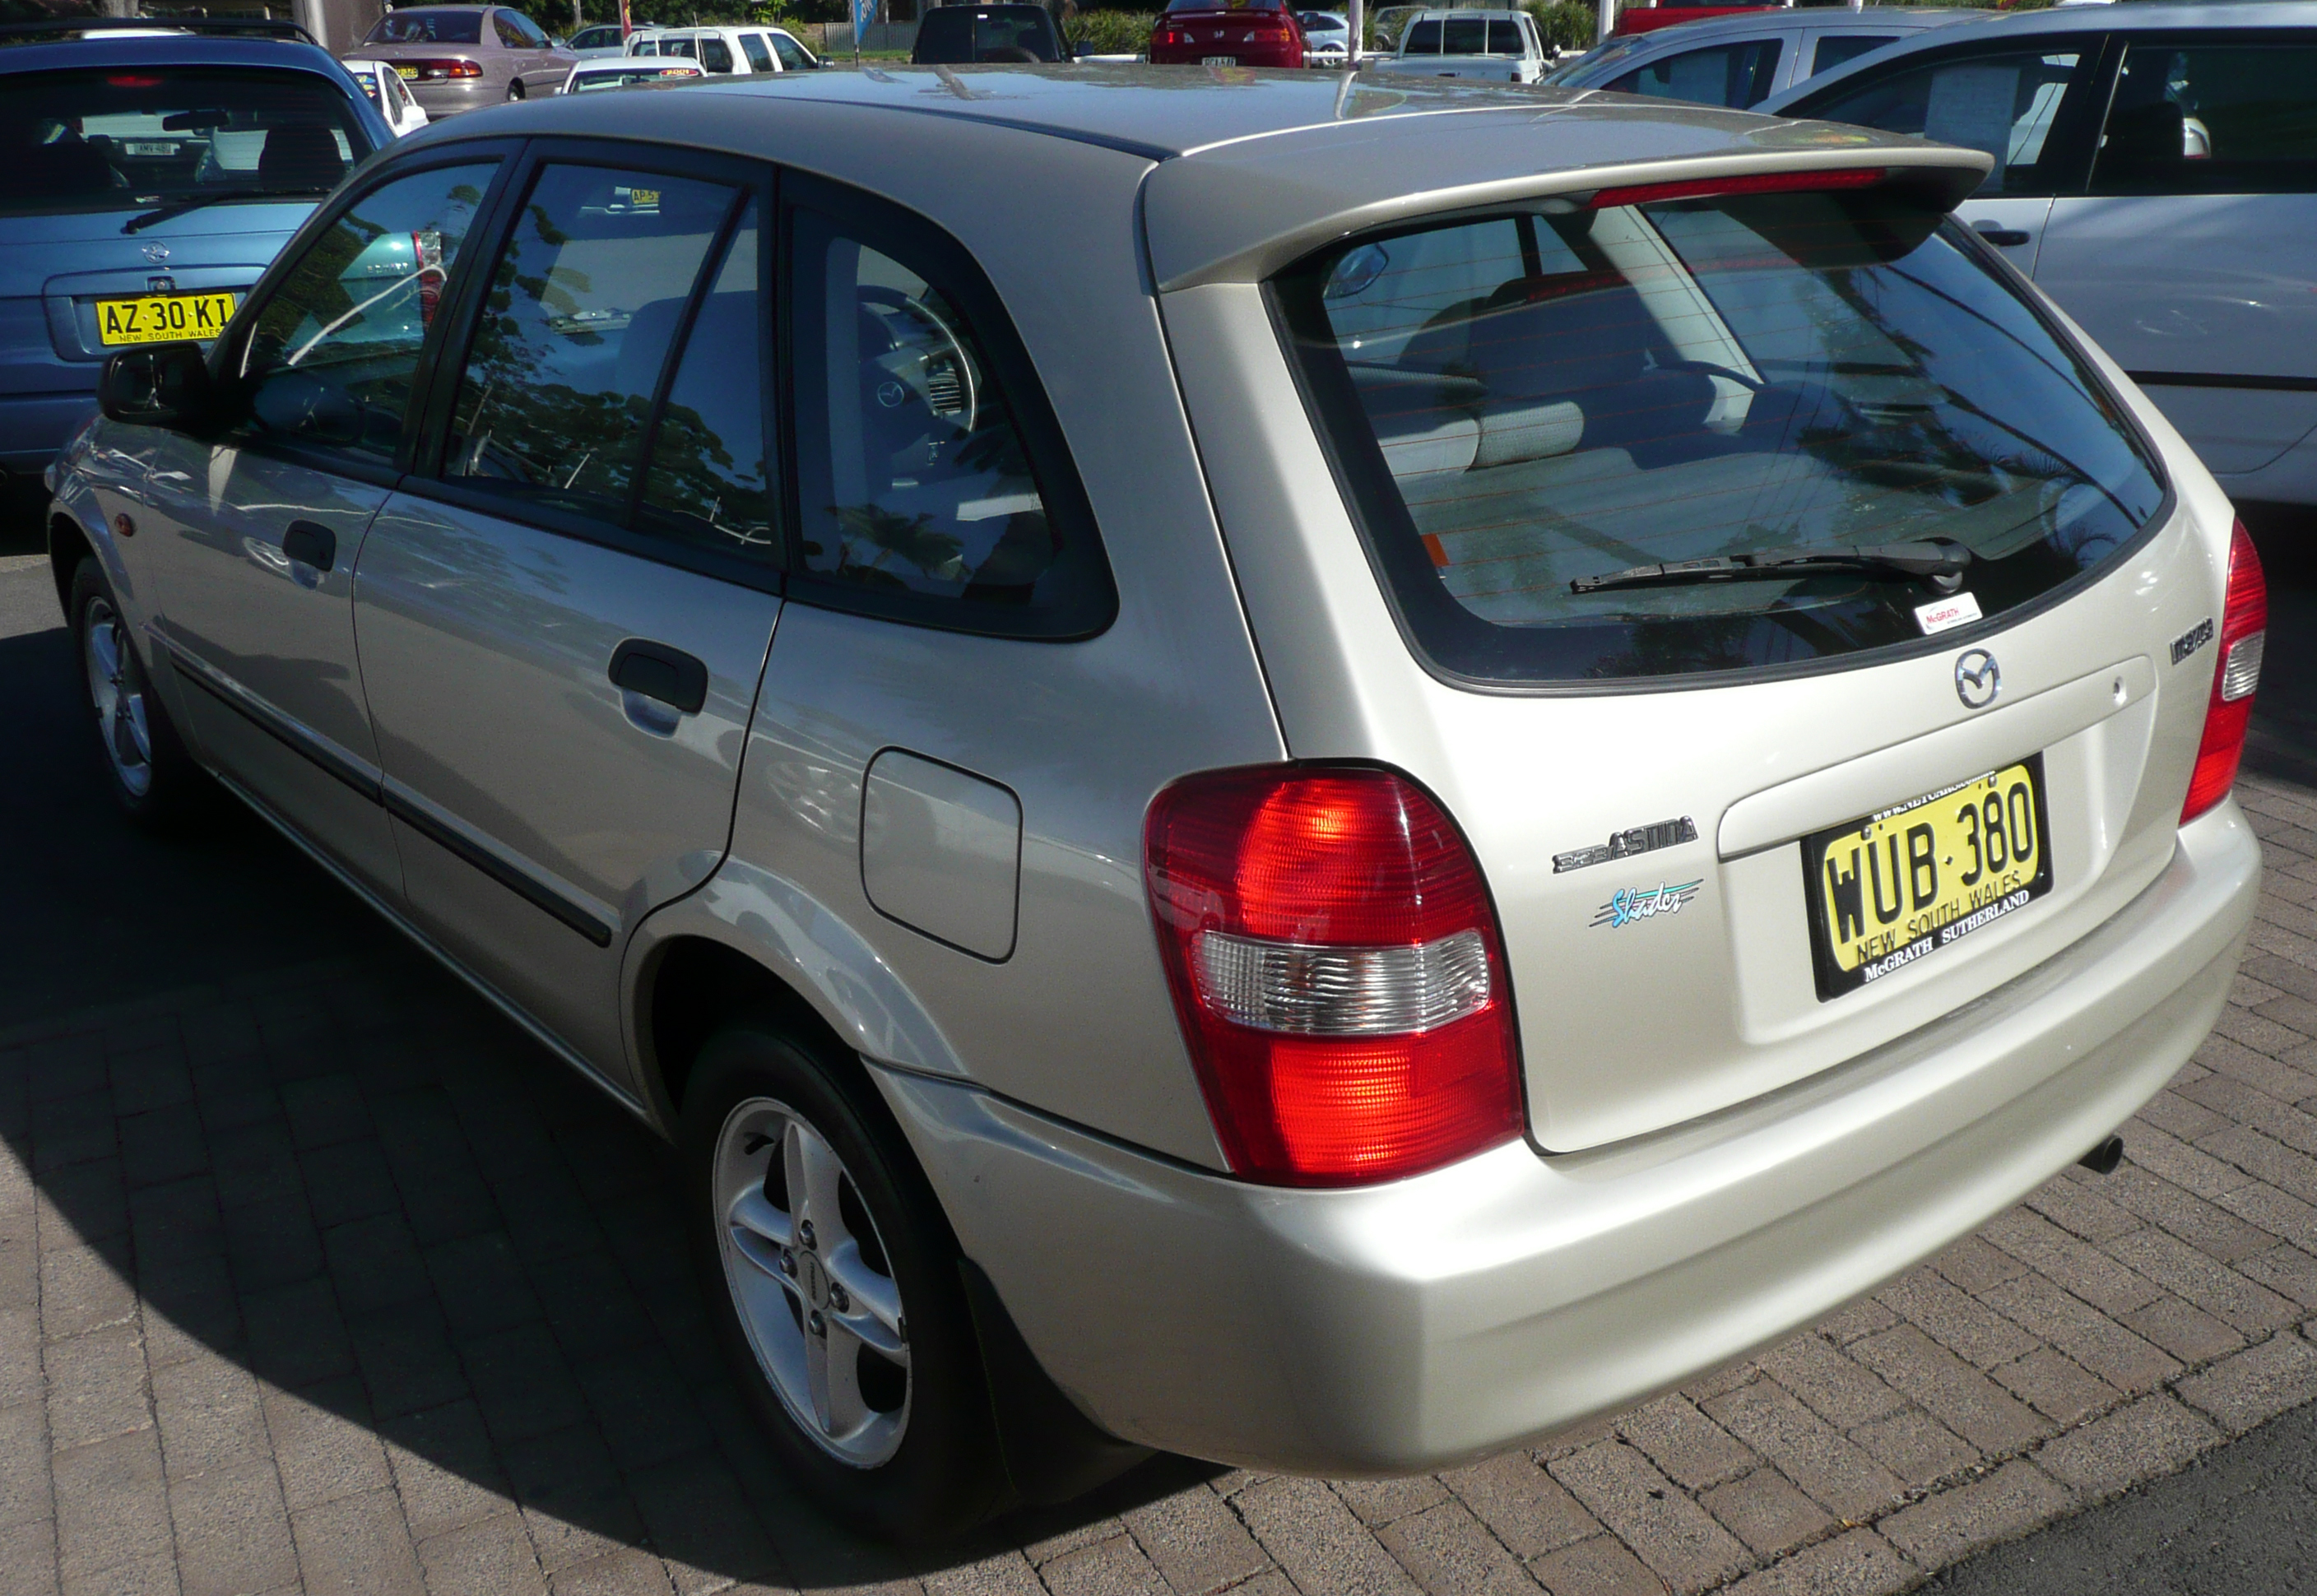 https://upload.wikimedia.org/wikipedia/commons/6/6b/2000_Mazda_323_%28BJ%29_Shades_Astina_5-door_hatchback_02.jpg